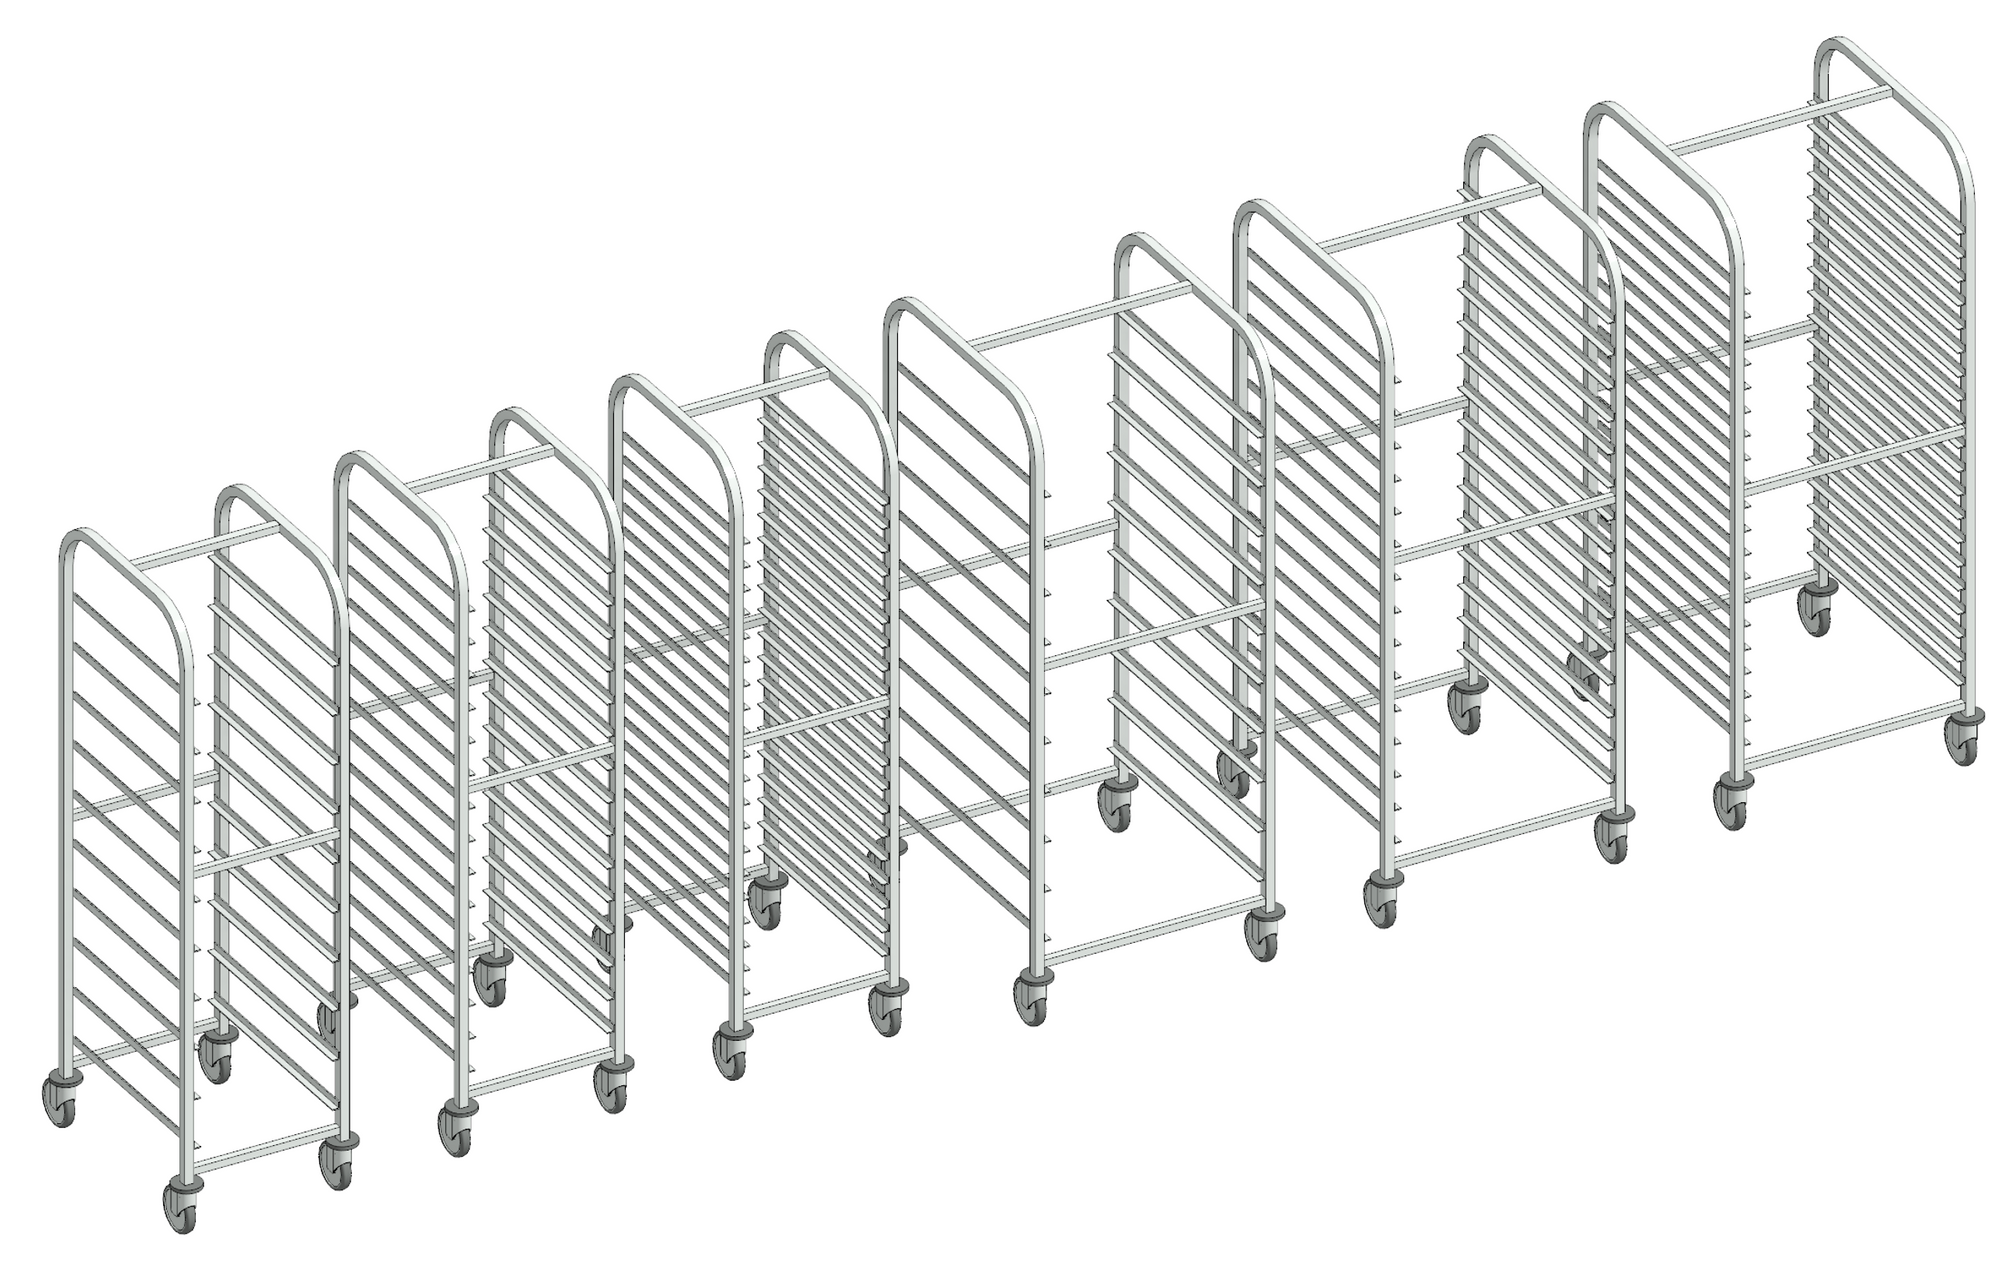 Revit family of mobile tray storage racks from Merlin Industrial Products.